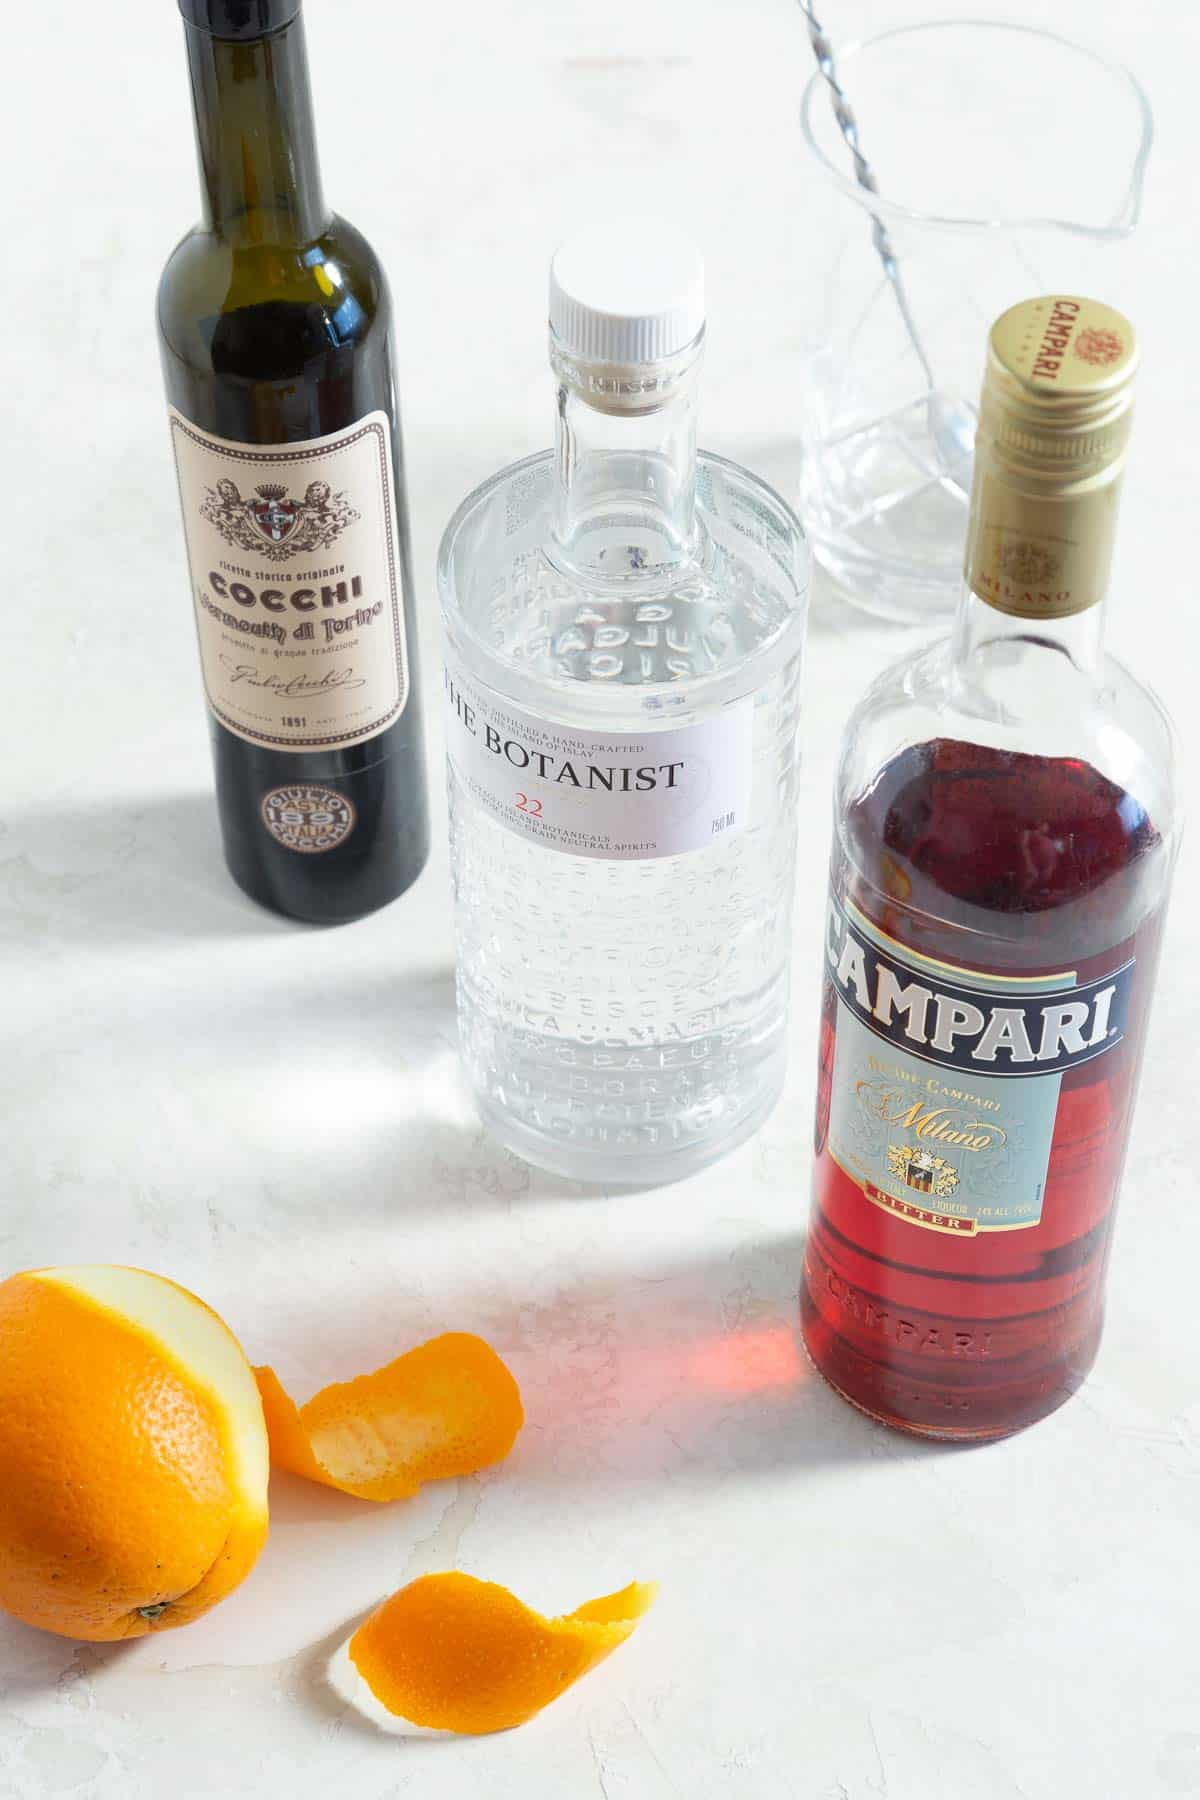 Bottles of sweet vermouth, gin, Campari, and a peeled orange.